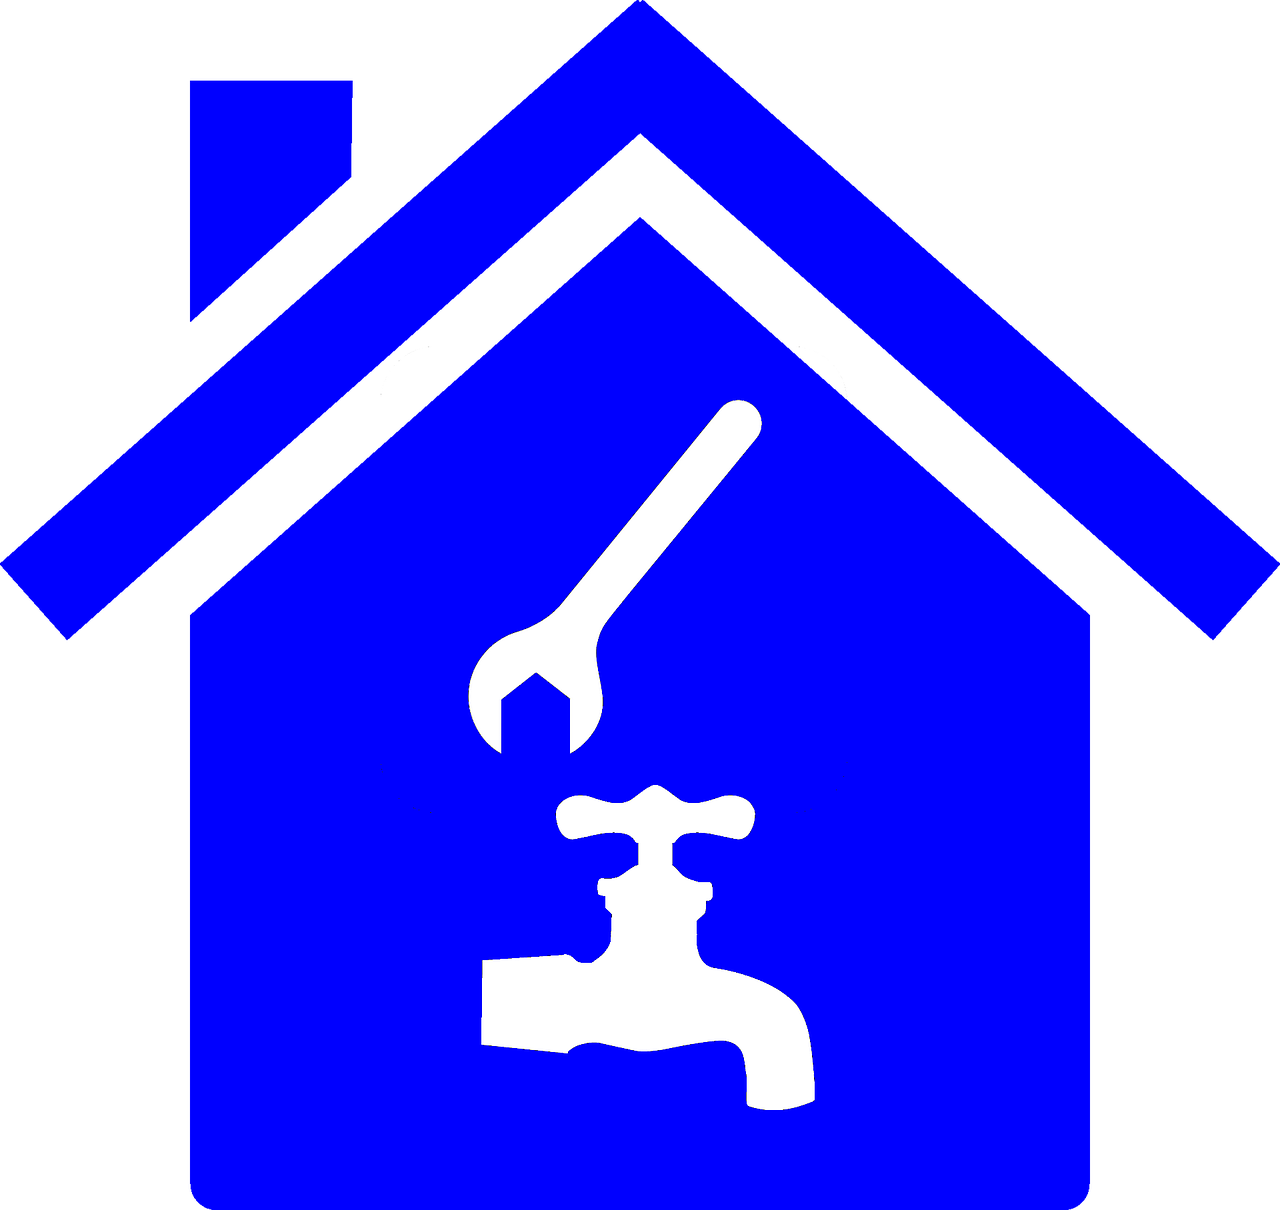 Plumbing clipart svg stock How To Keep Your Pipes Safe From Winter While You're Away - SWAT ... svg stock